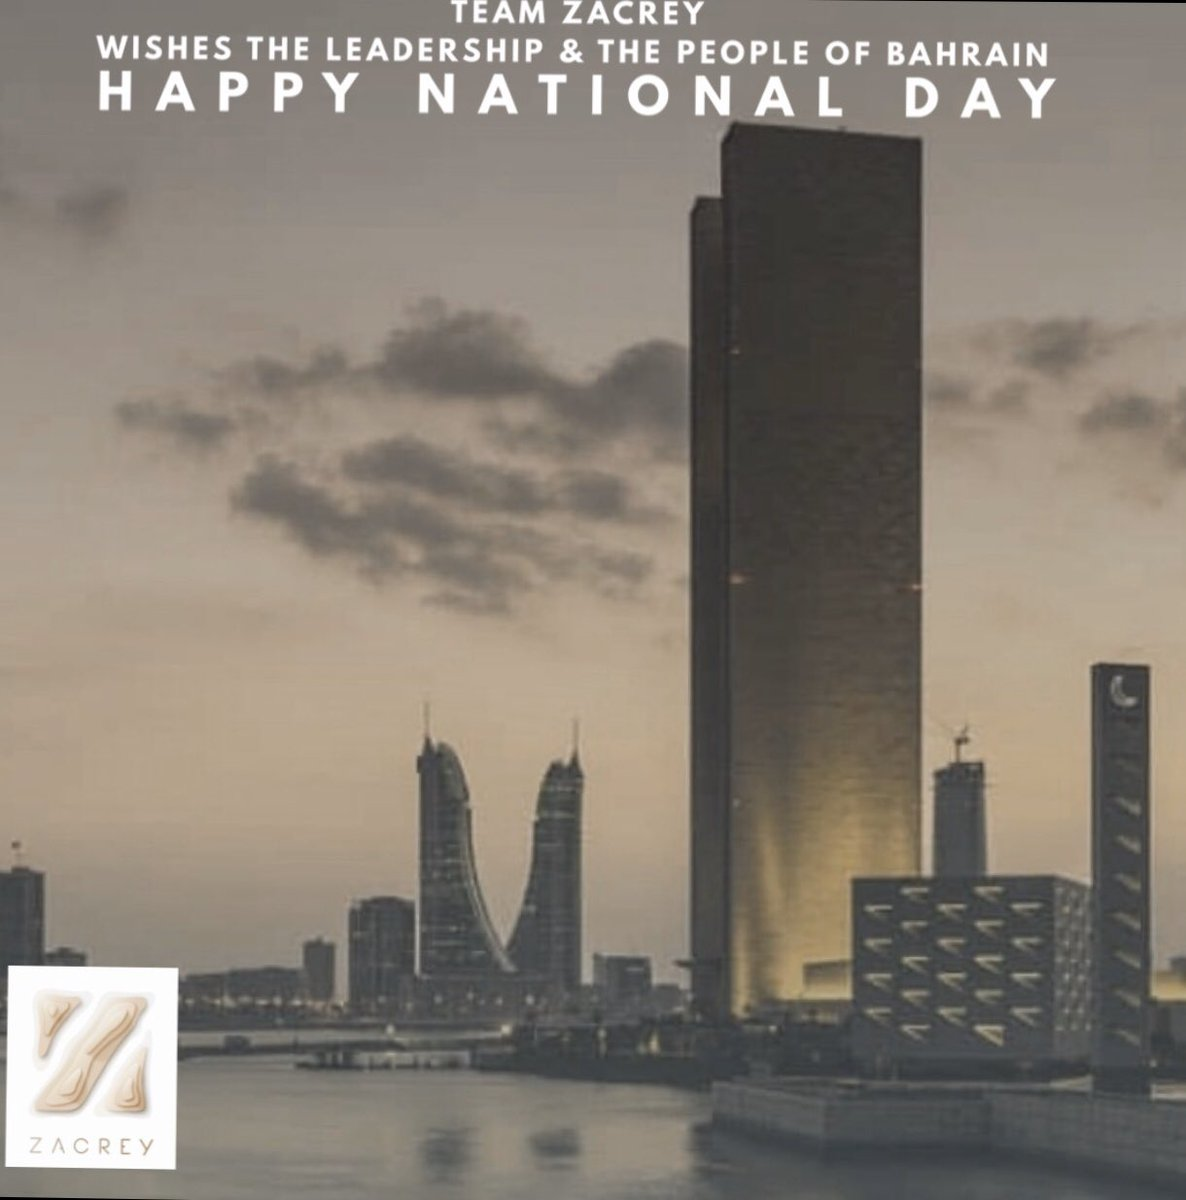 Team ZACREY extends its sincere greetings to the people of the Kingdom of Bahrain on the occasion of The National Day and His Majesty's Accession Day.  #bahrain #bah #bh #happynationalday #zpw #zhw #zacrey #design #business #businessdesign #16dec #gcc #MENApic.twitter.com/E8MMnsL7DM